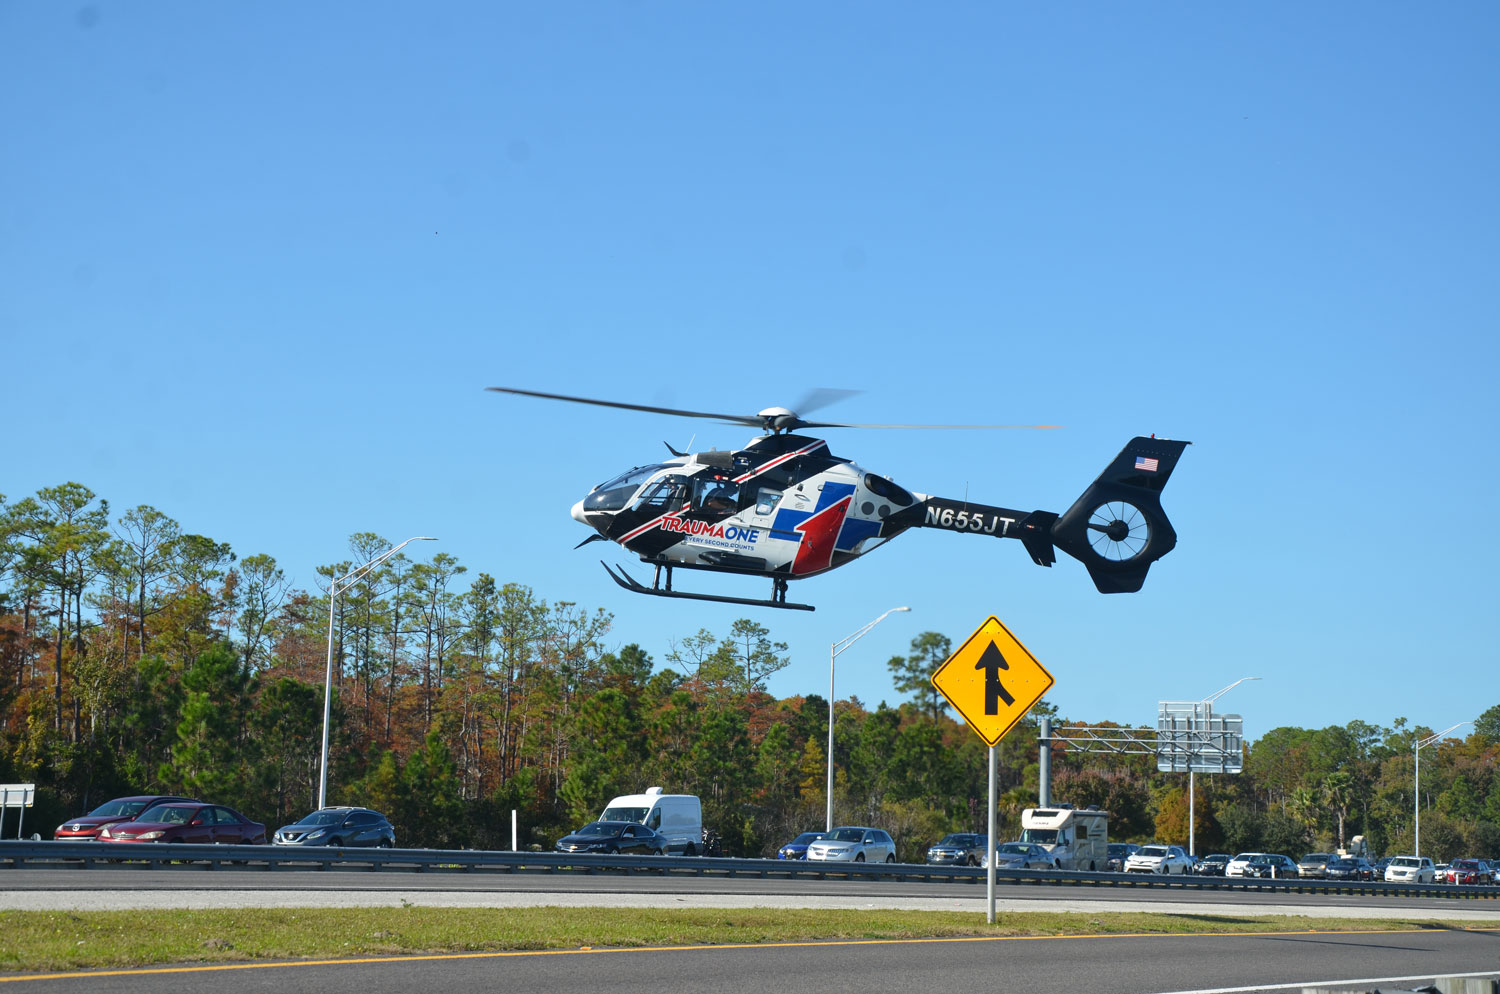 Trauma One, thje emergency helicopter, lifting off from the northbound lanes of I-95 near the juncture with State Road 100, with one patient, at 2 p.m. this afternoon. (c FlaglerLive)